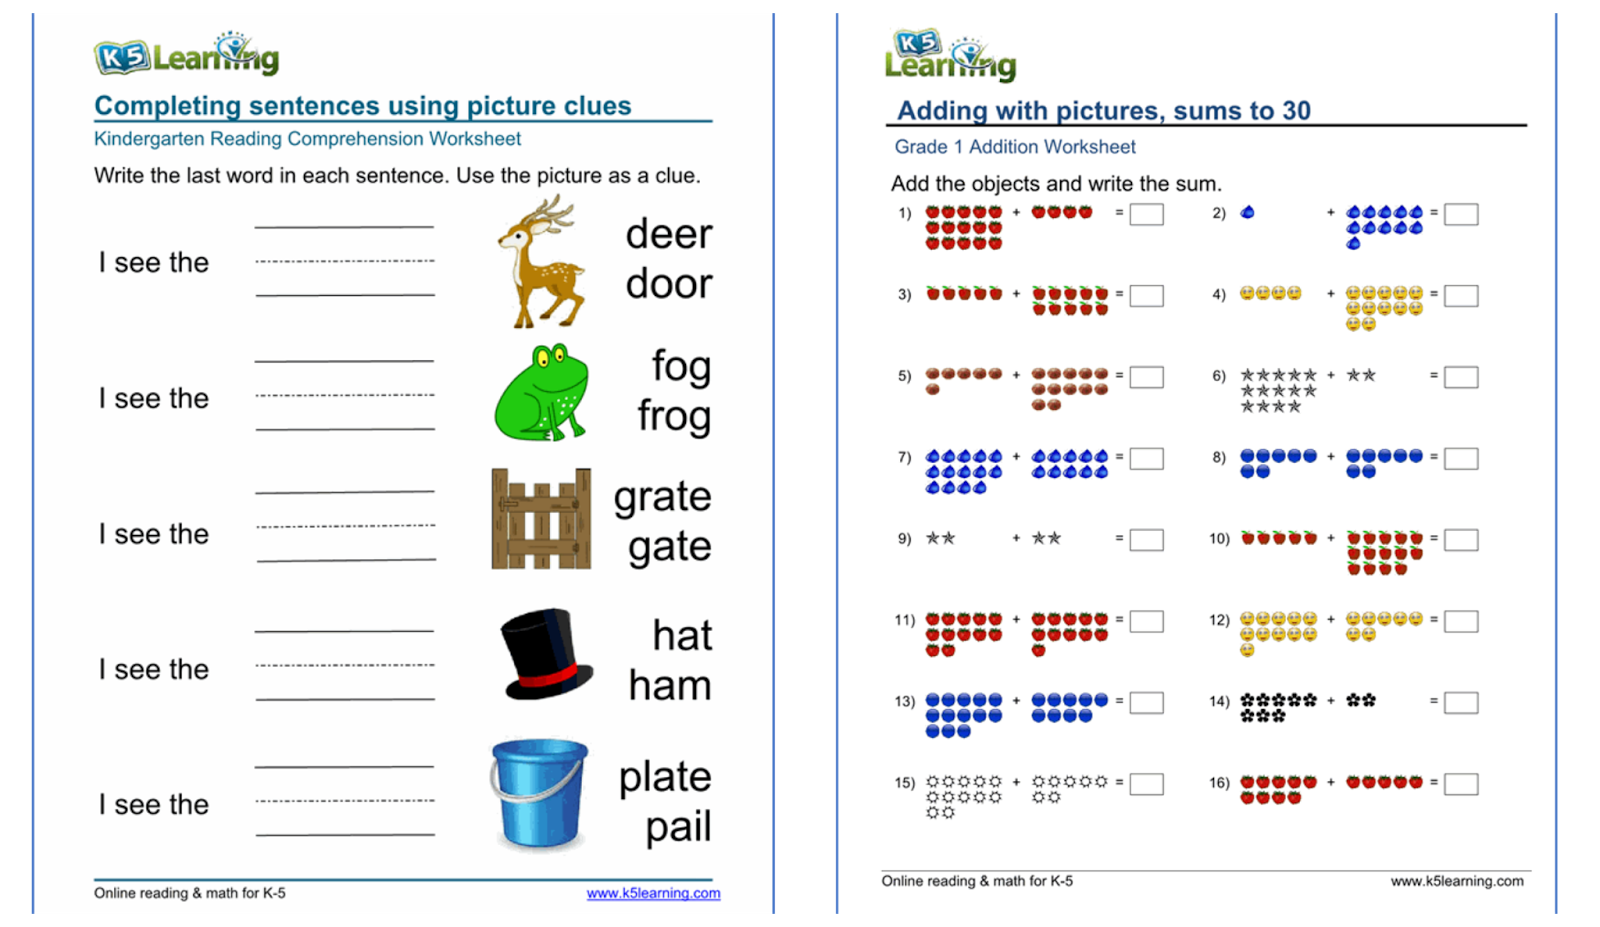 hight resolution of Free Math Printable Worksheets K5 Learning   Printable Worksheets and  Activities for Teachers